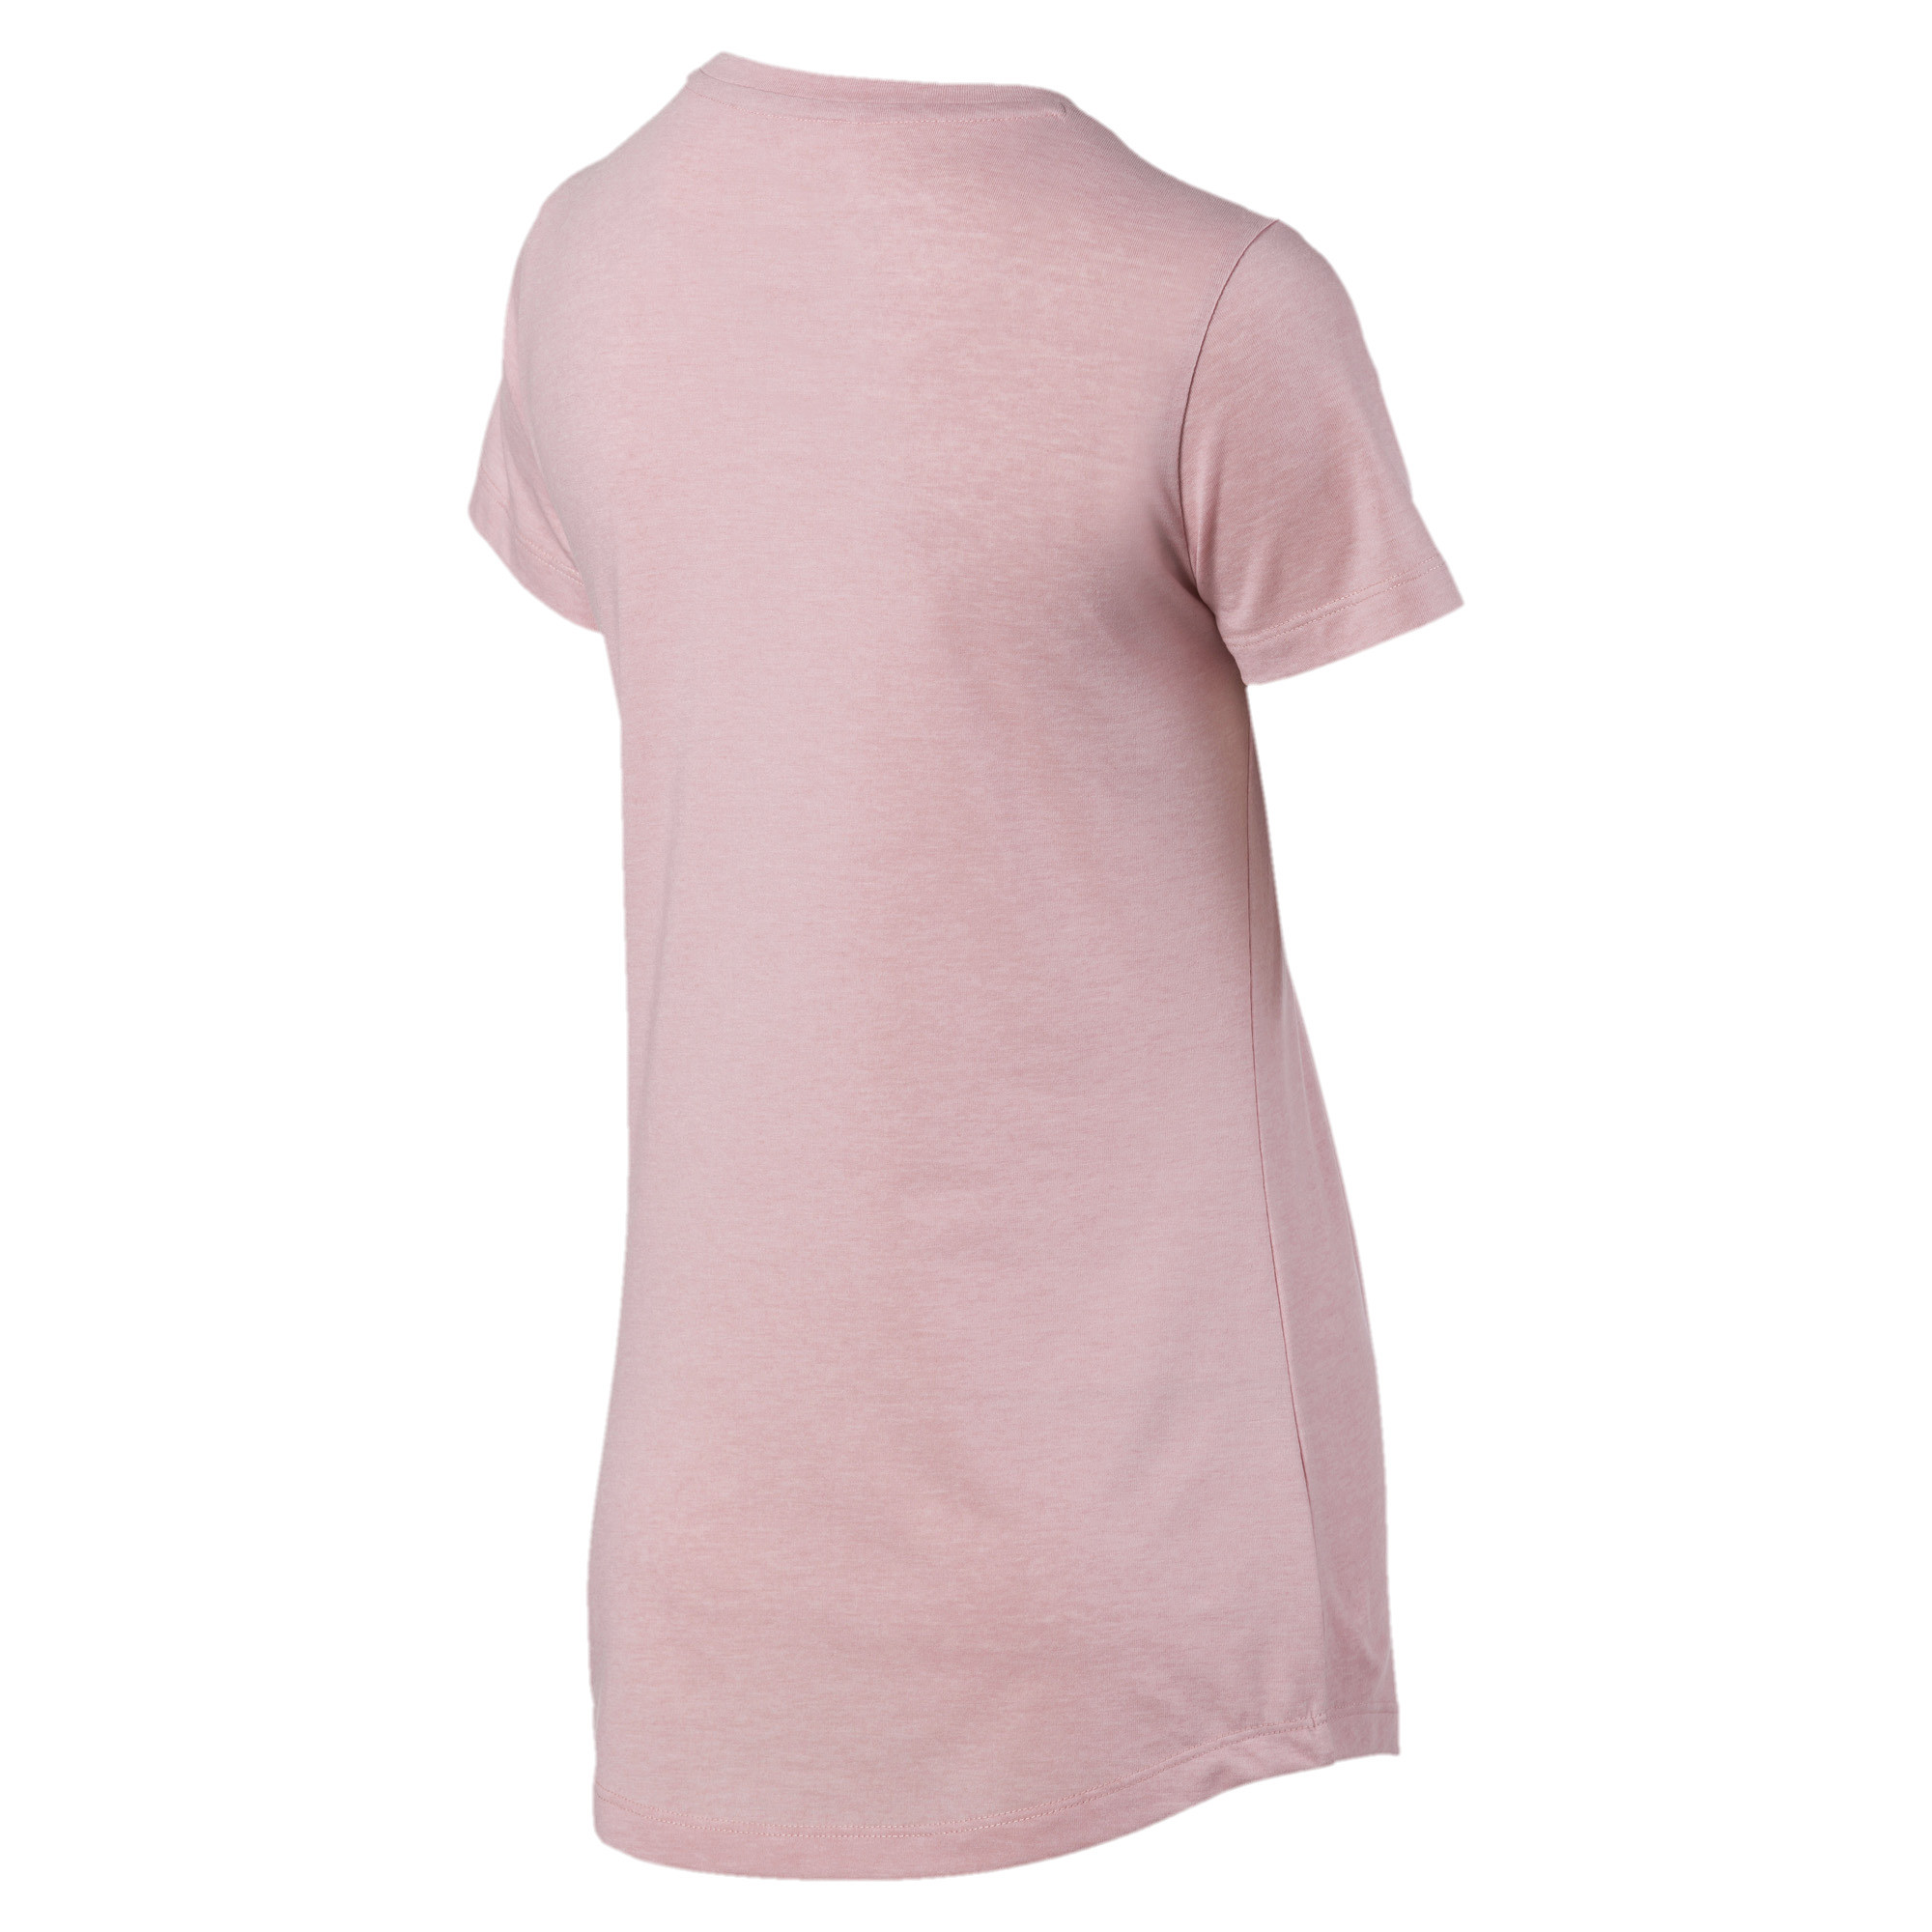 PUMA-Essentials-Women-039-s-Heather-Tee-Women-Tee-Basics thumbnail 10